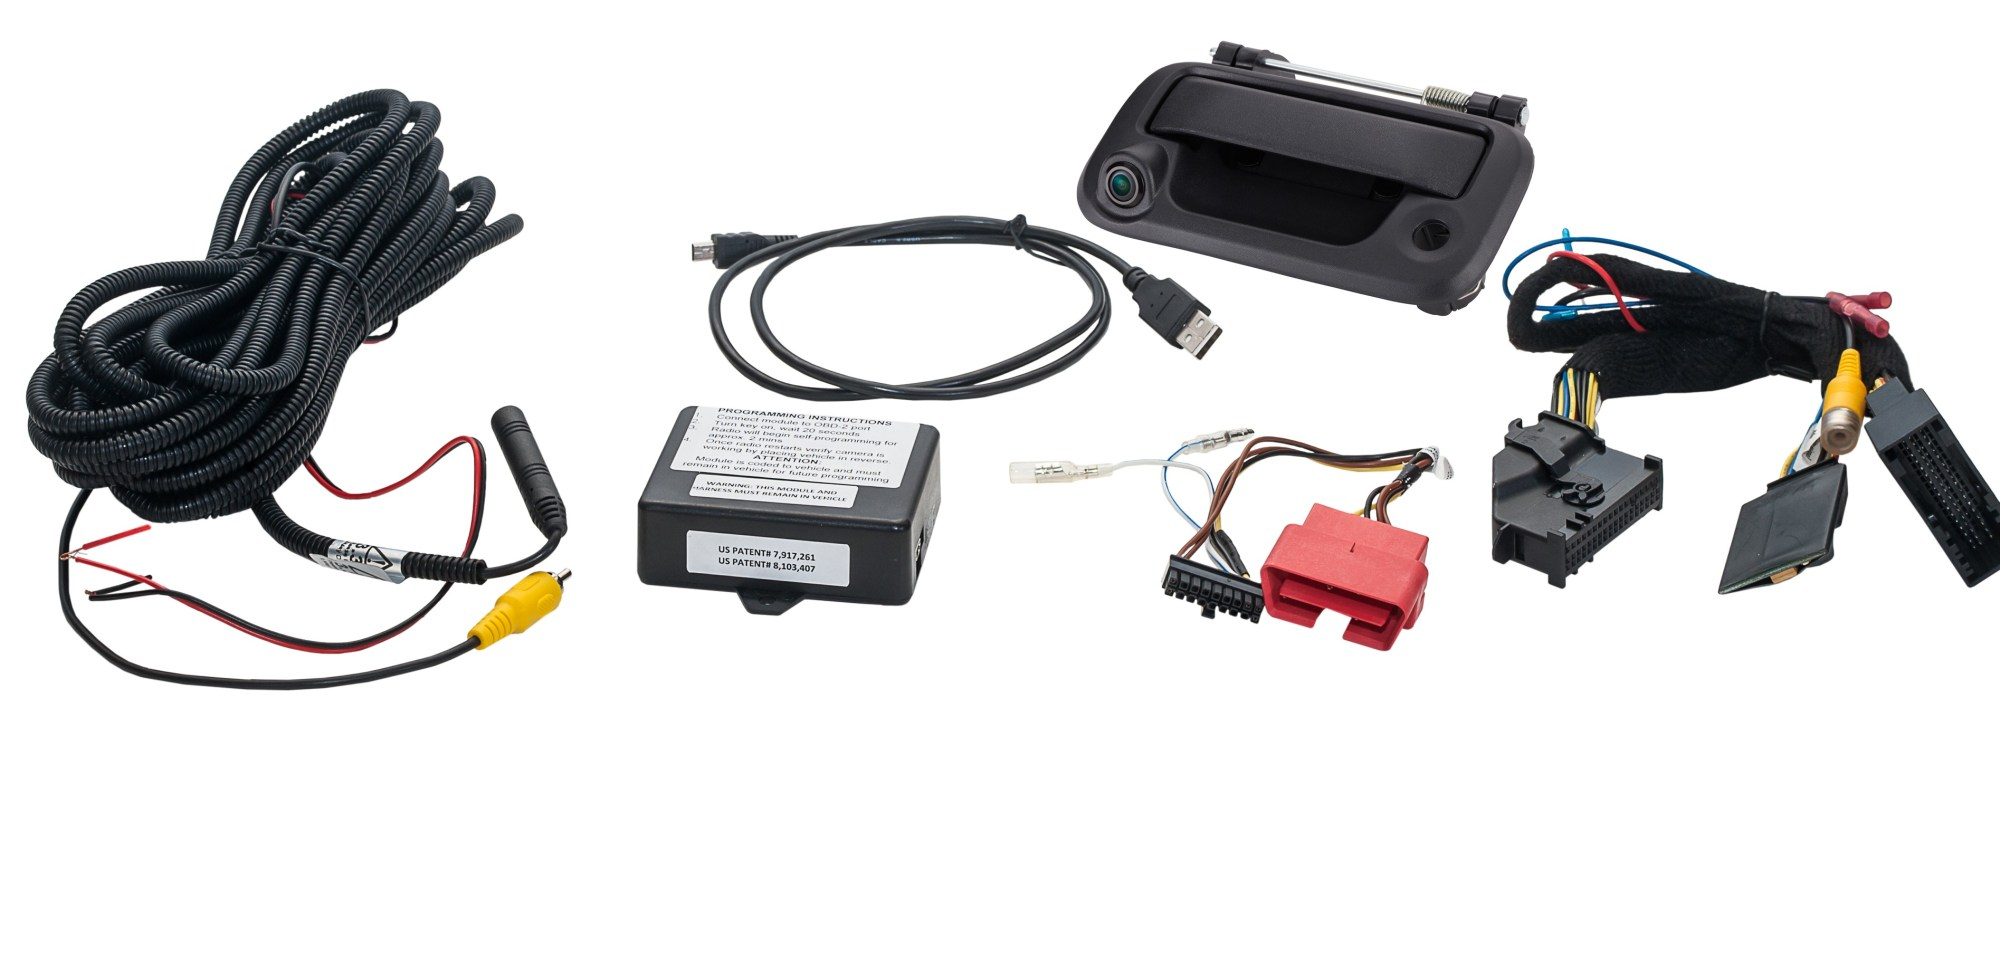 hight resolution of tailgate handle reverse camera integration kit for select fords echomaster